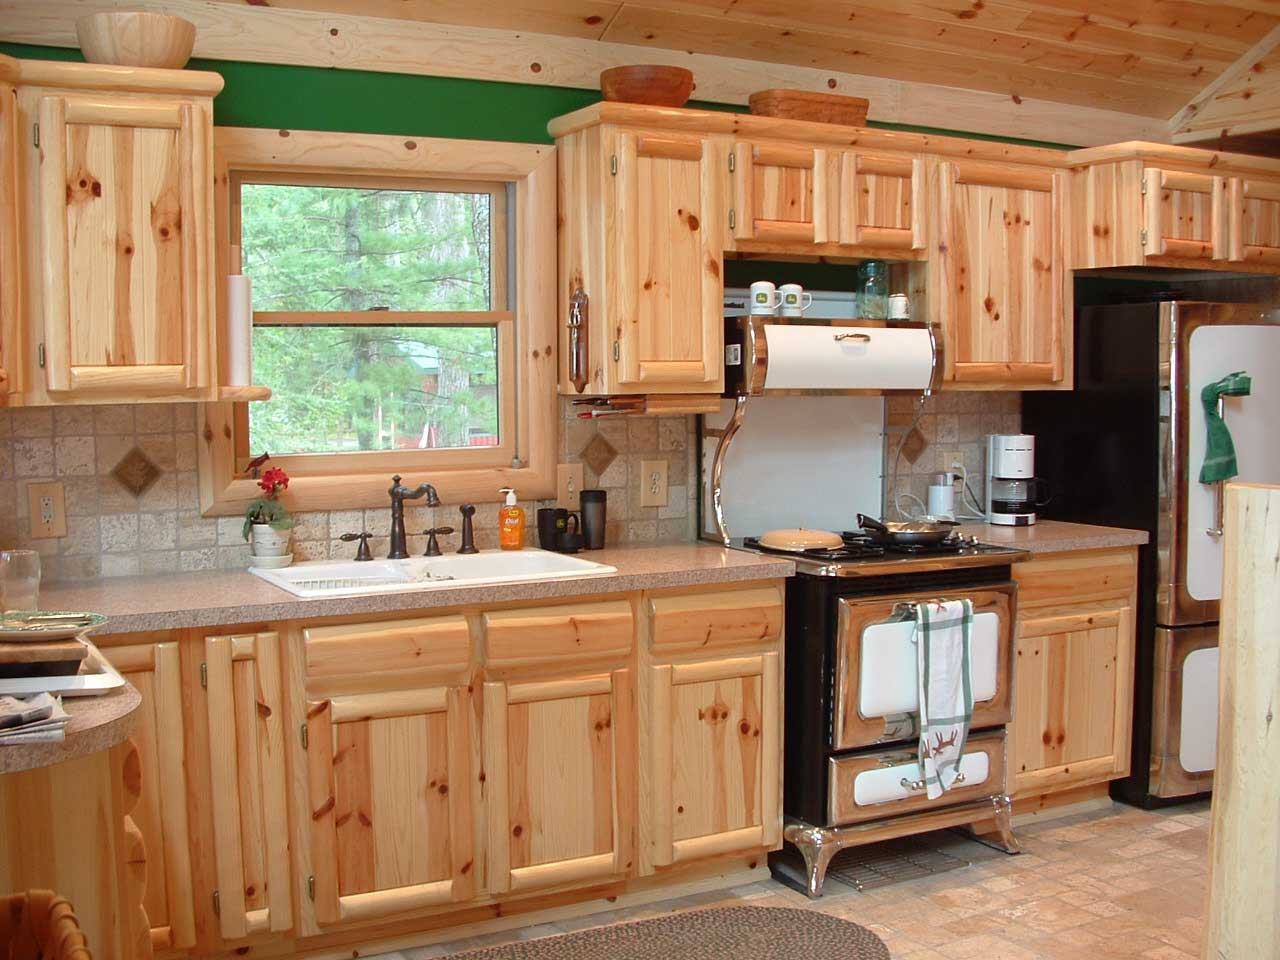 kitchen cabinets set remodel cheap cabinetry kitchens and baths timber country 03webquality